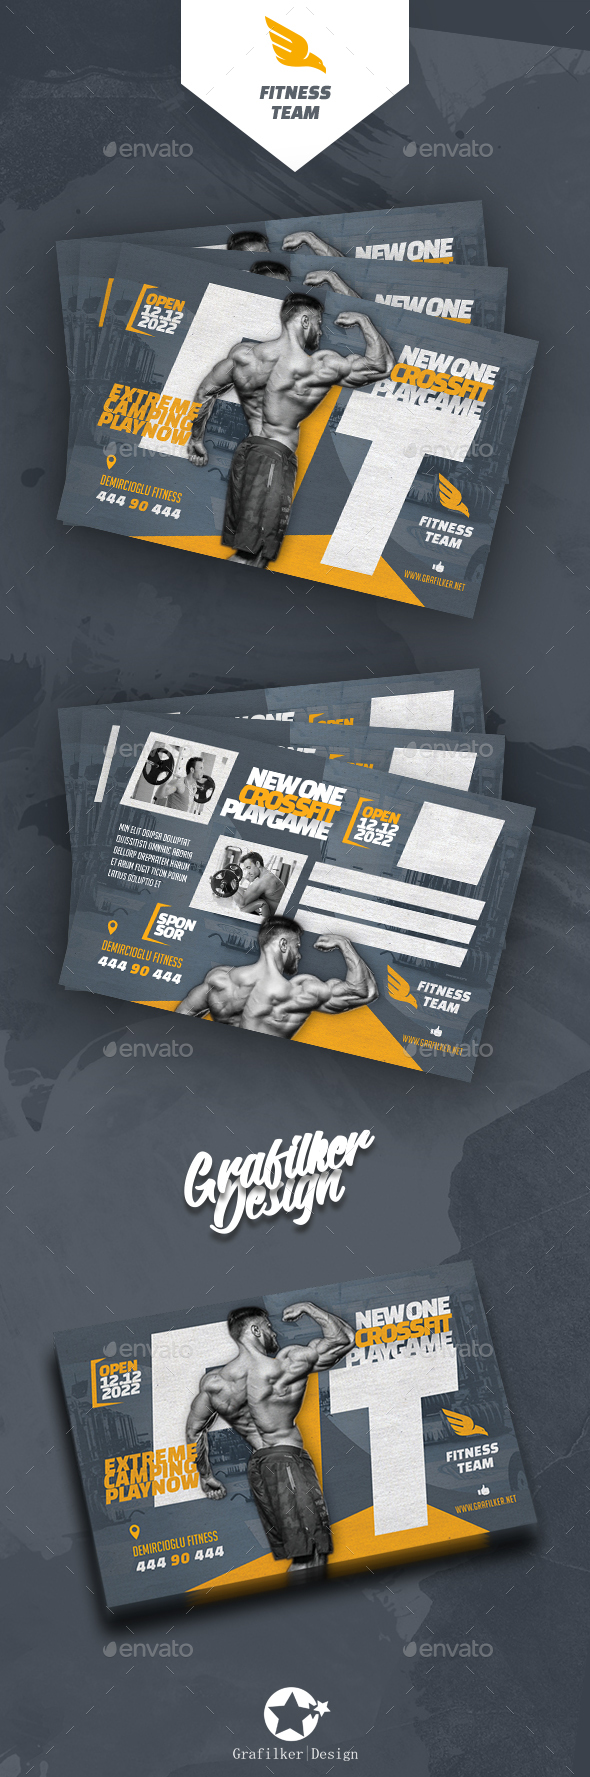 Fitness Time Postcard Templates - Cards & Invites Print Templates